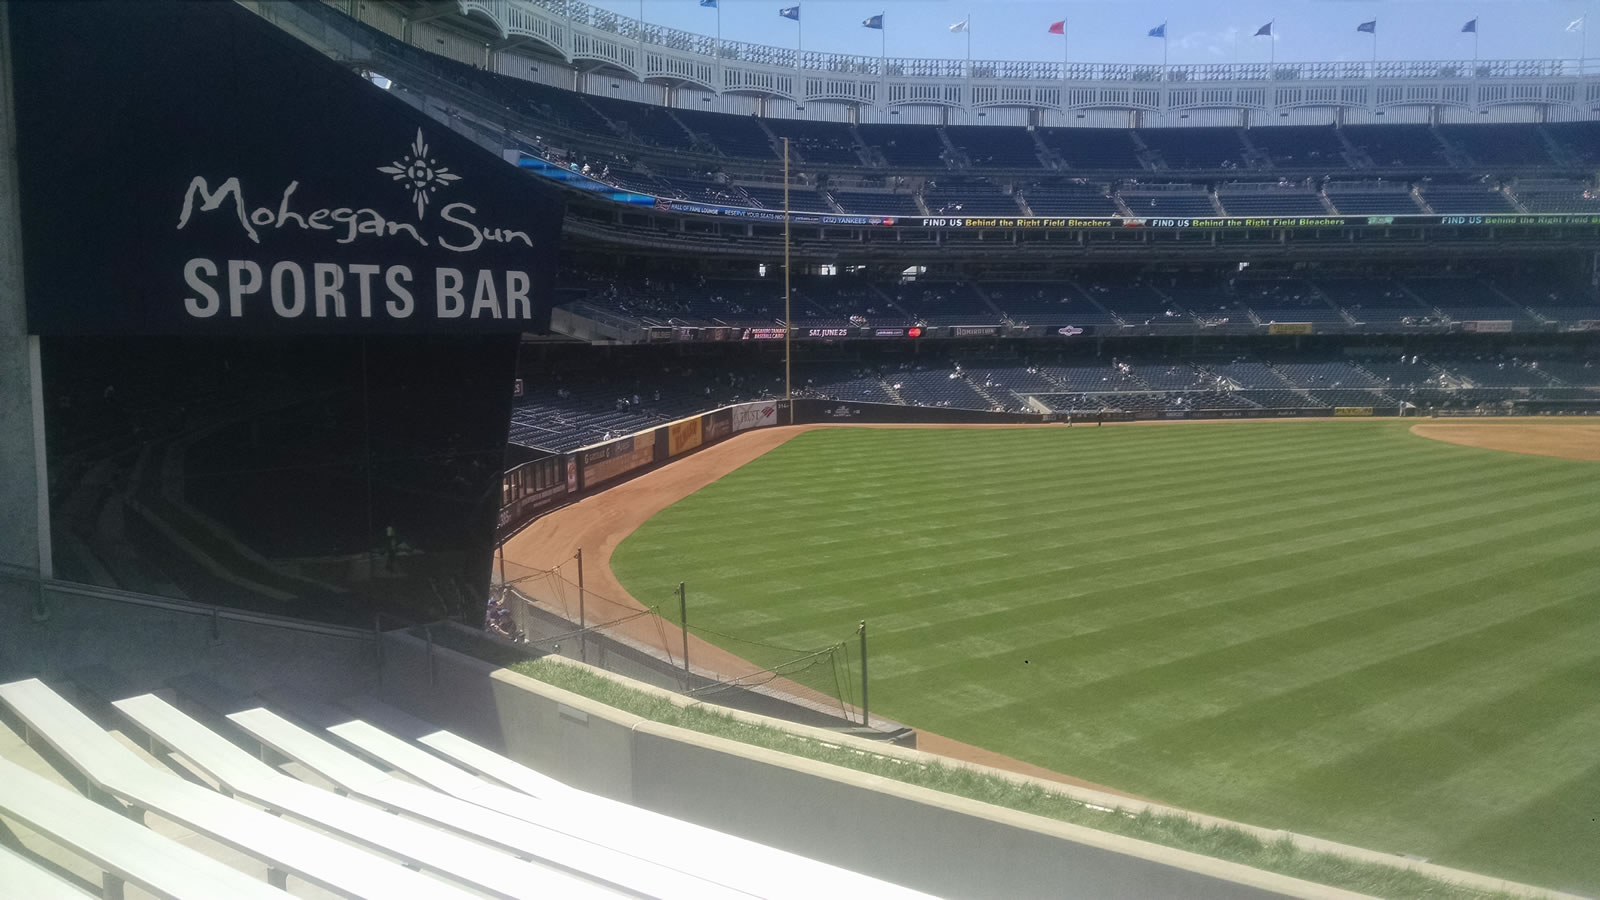 New York Yankees Seat View for Yankee Stadium Section 239, Row 9, Seat 1